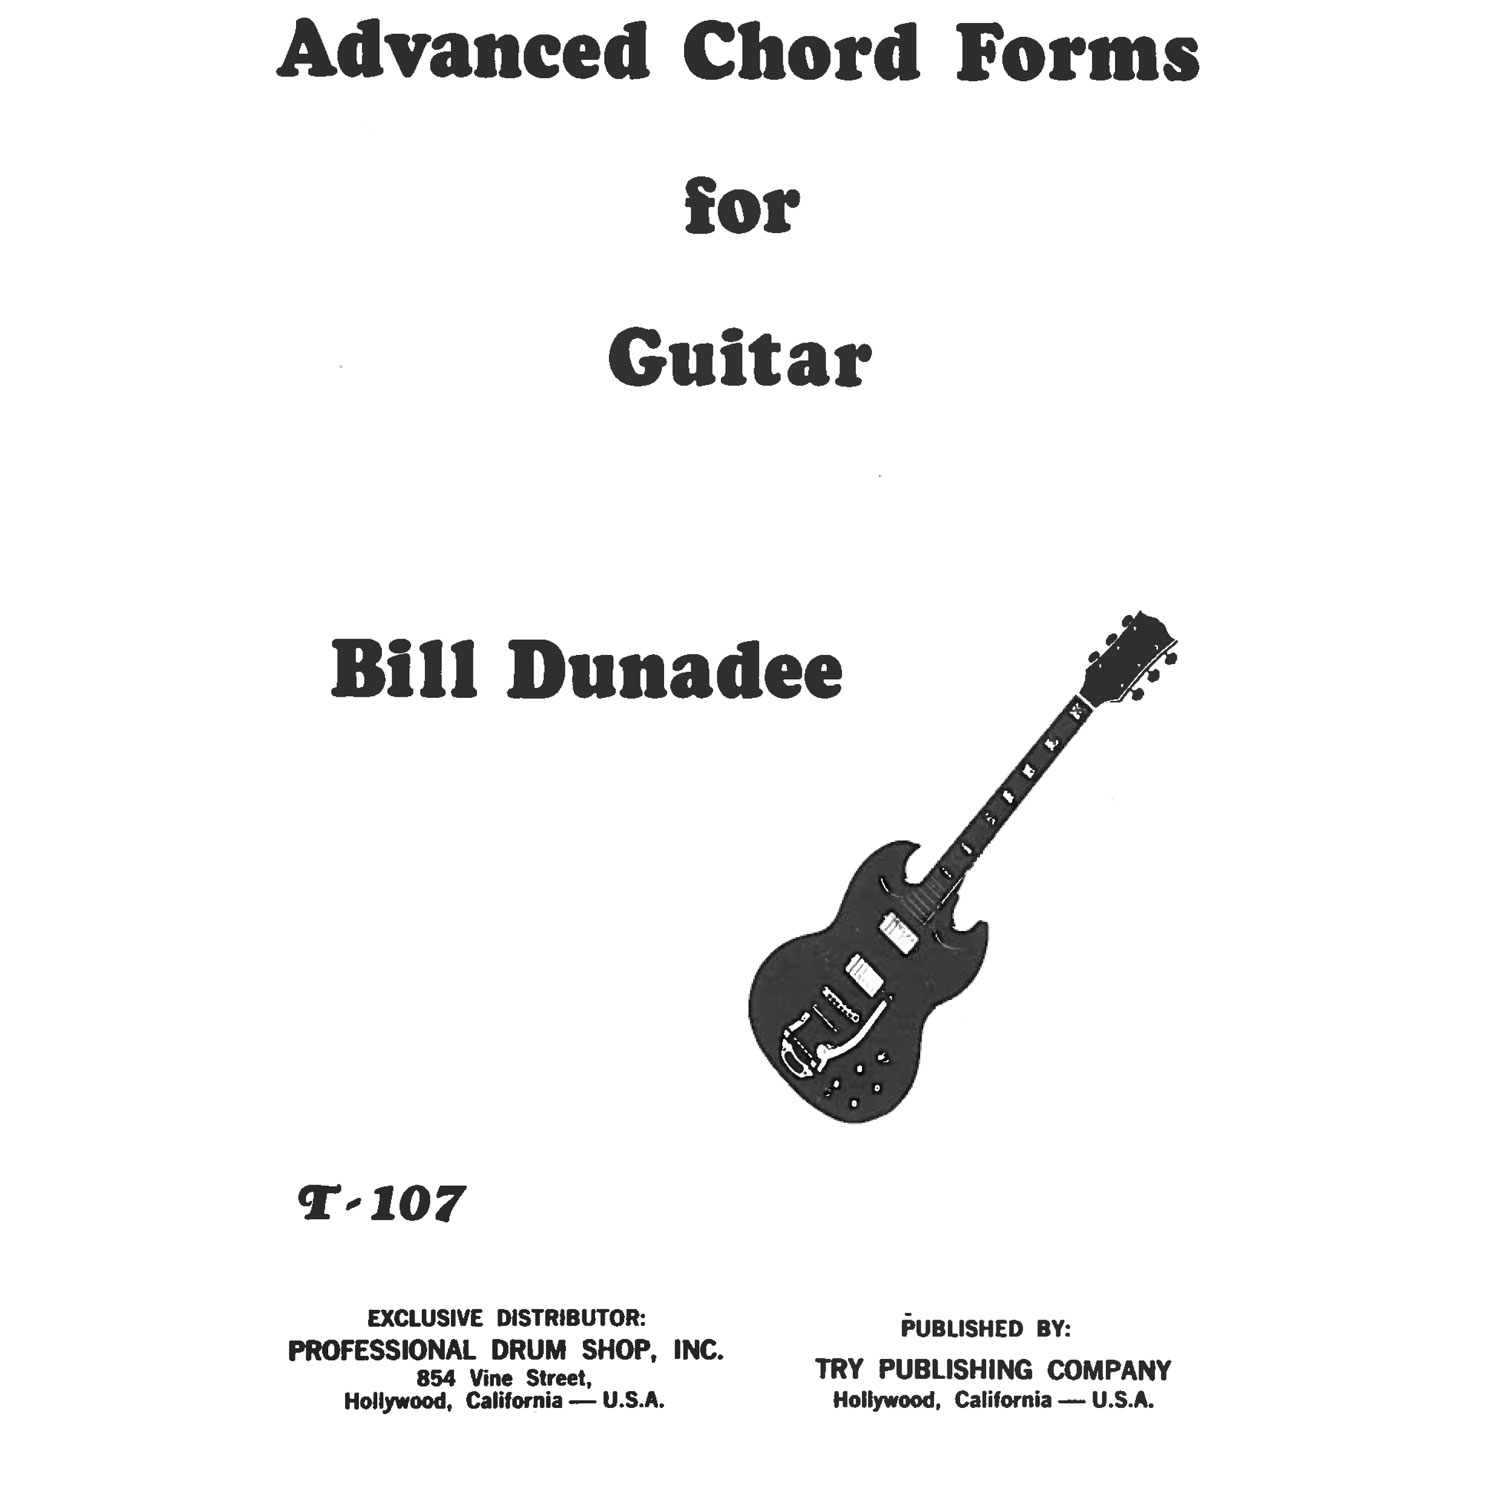 Advanced Chord Forms for Guitar by Bill Dunadee